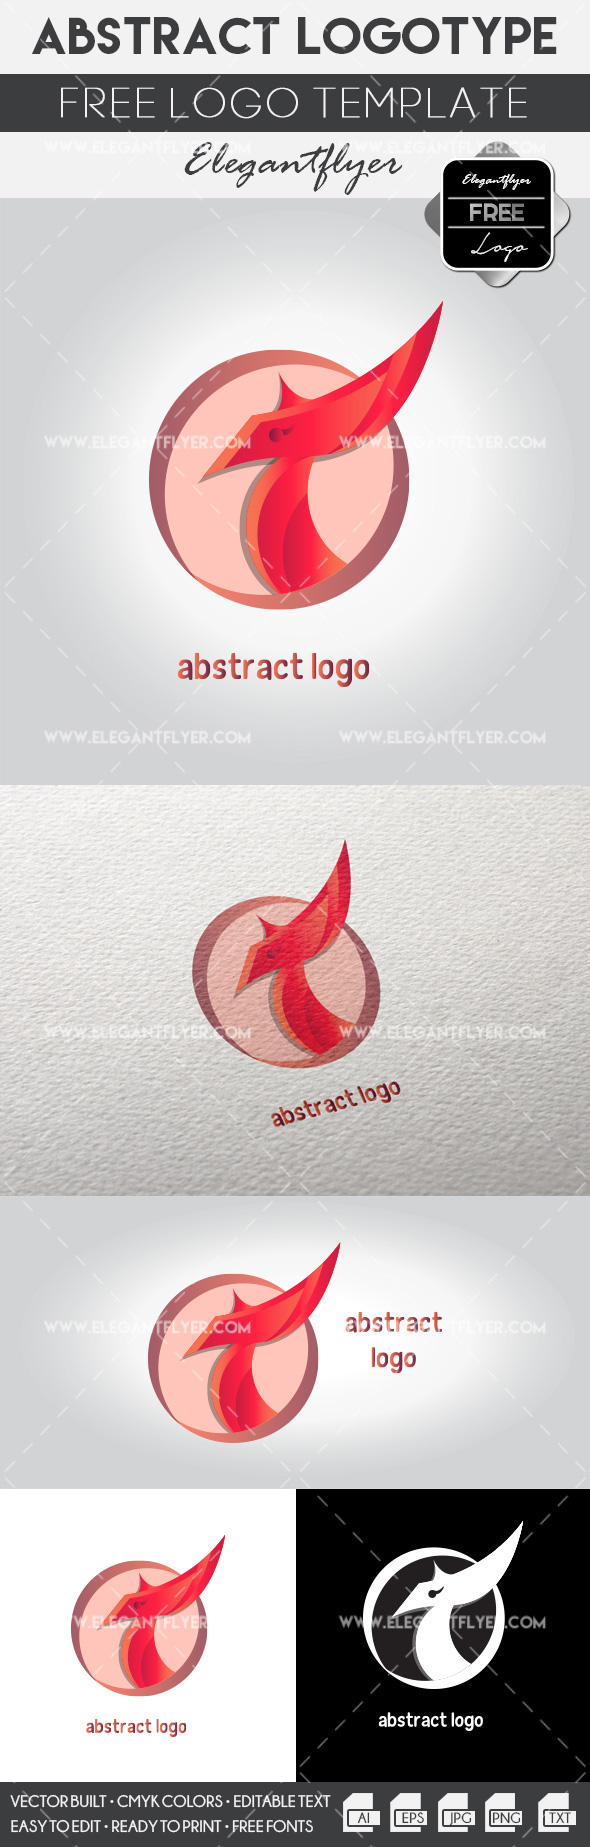 Abstract Logo – Free Logo Template